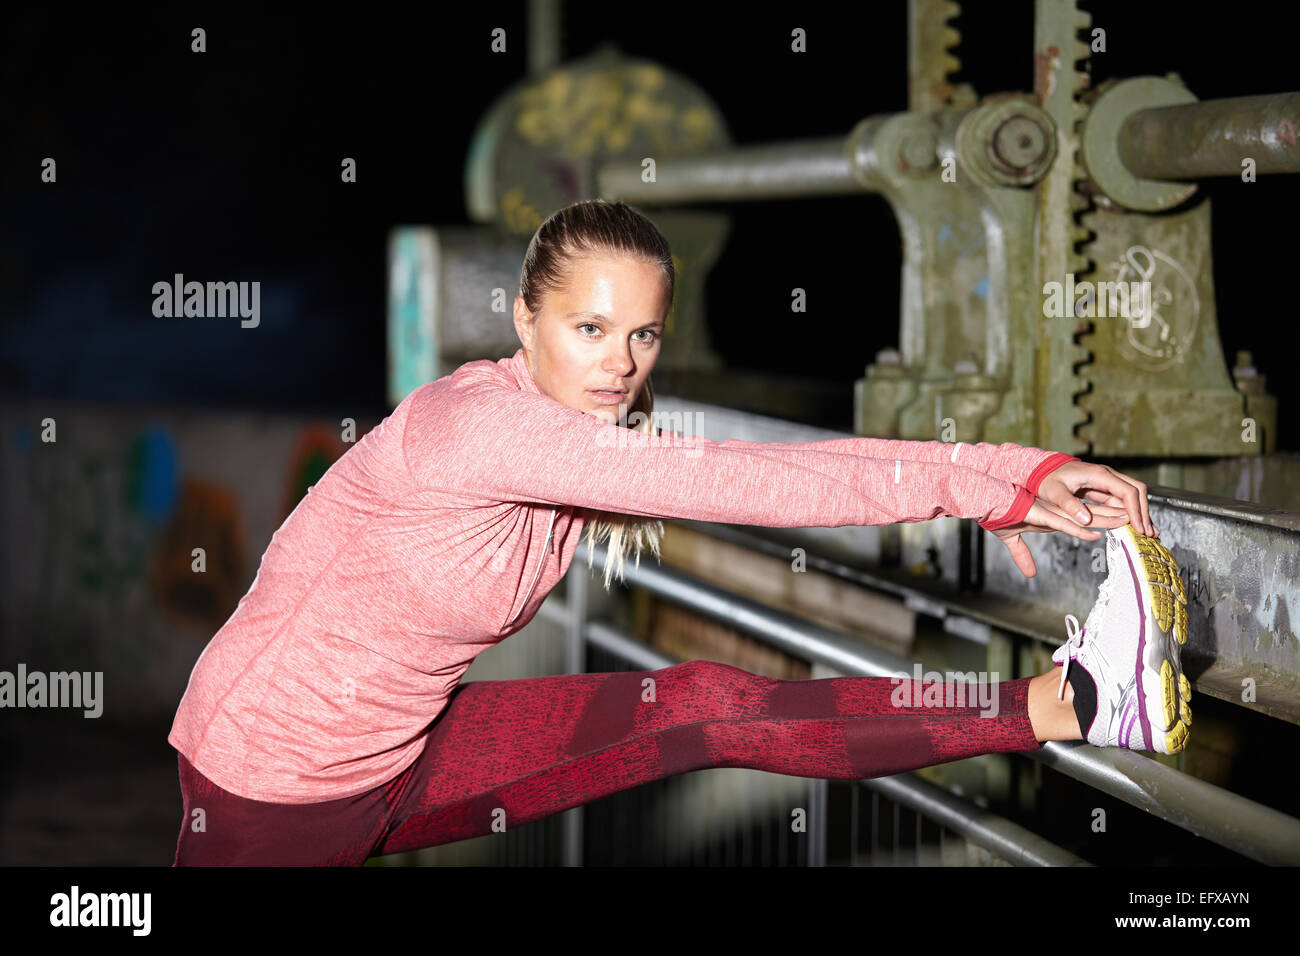 Young woman touching toes on footbridge at night - Stock Image